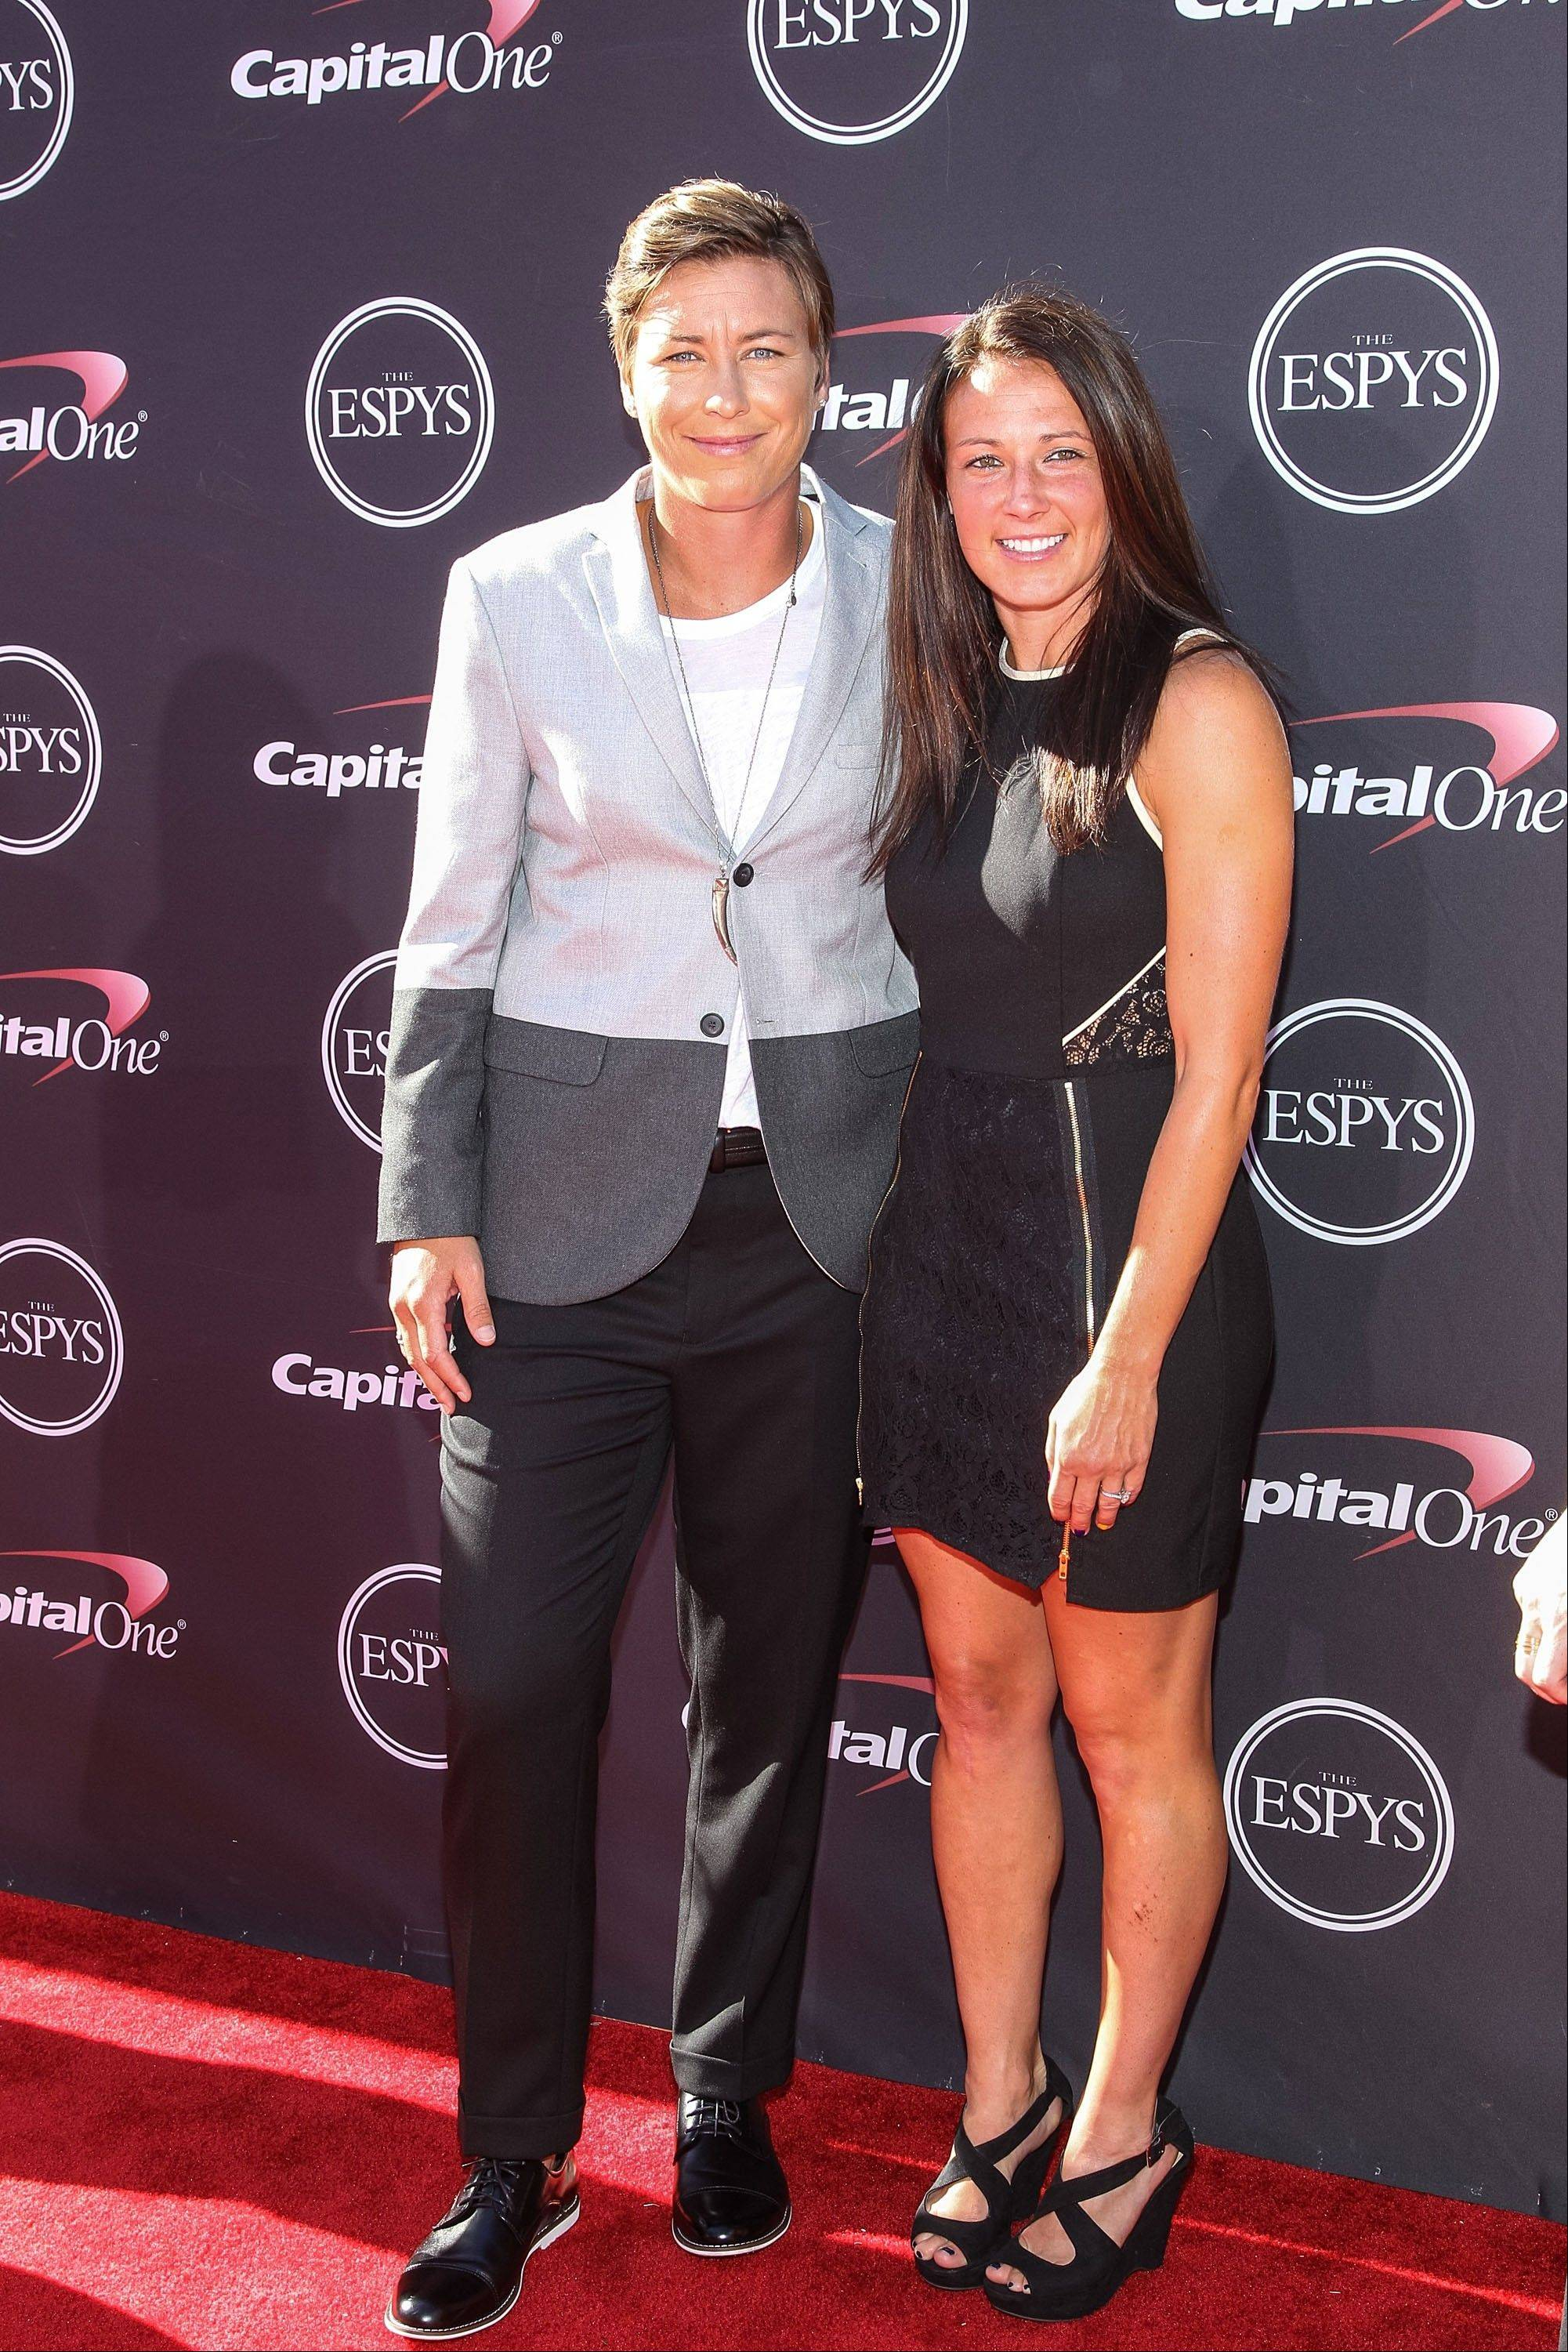 Soccer players Abby Wambach, left, and Sarah Huffman arrive for the ESPY Awards in Los Angeles. They were married earlier this month in Hawaii.